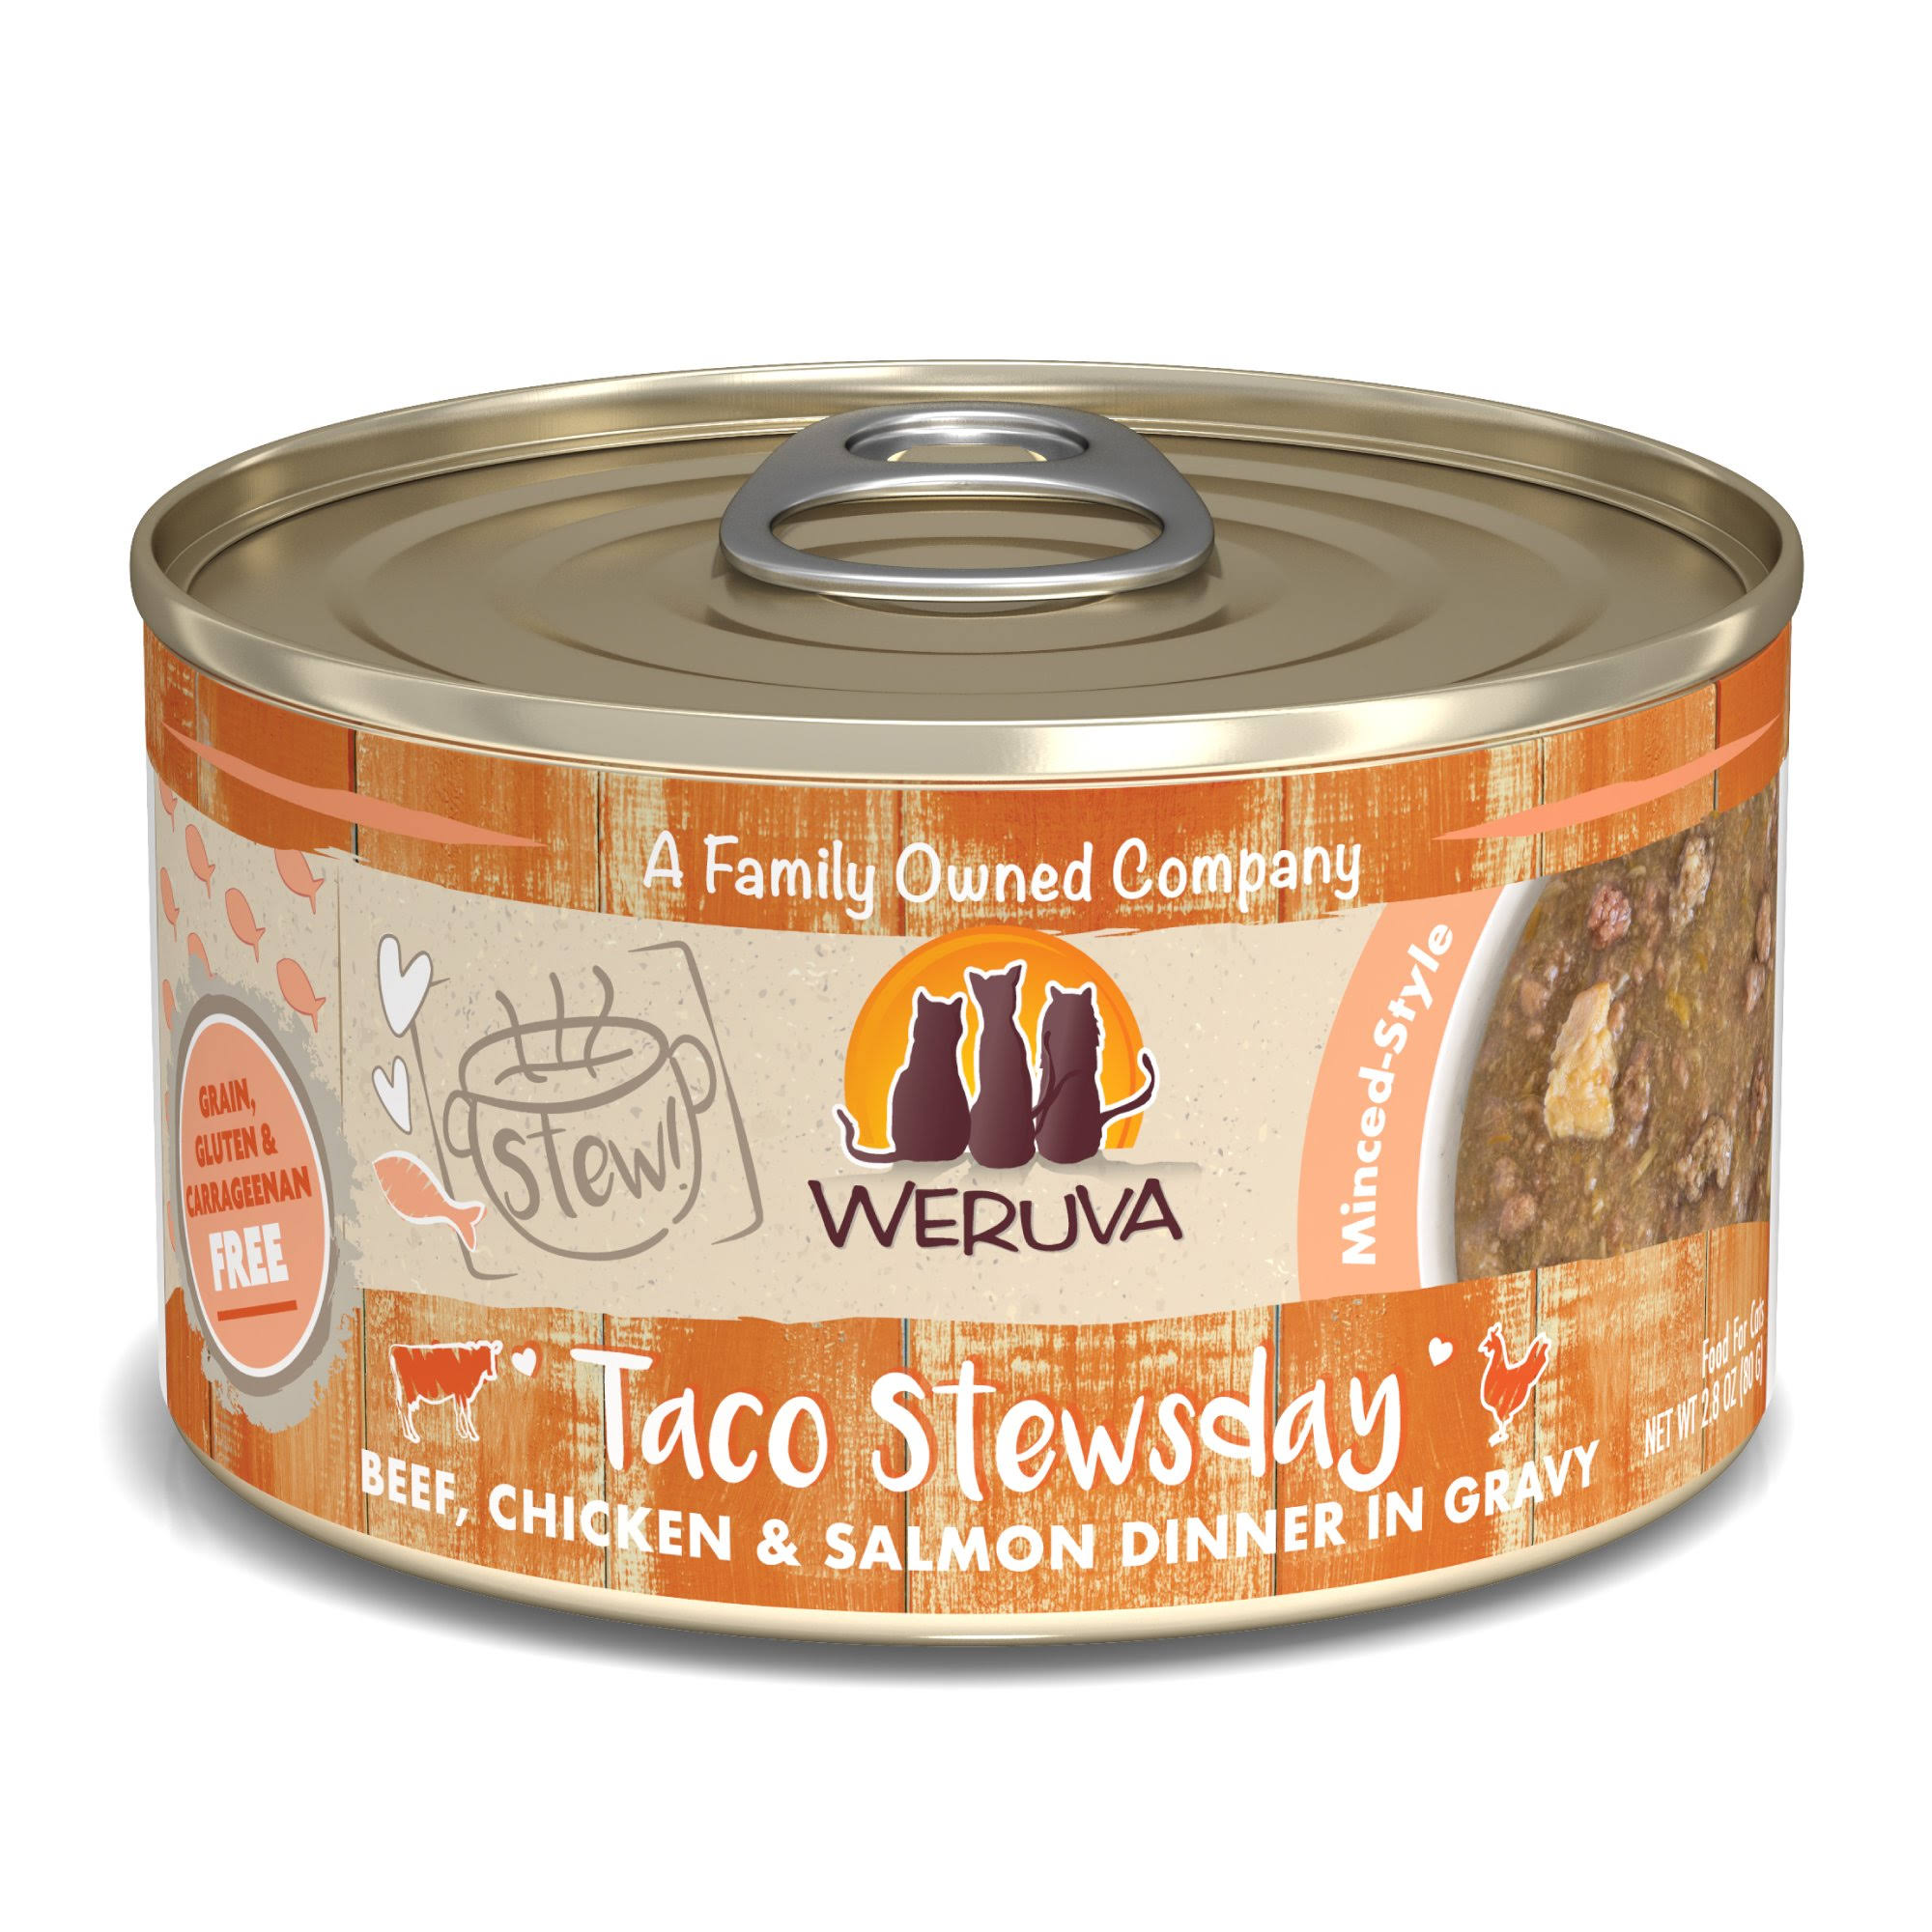 Weruva Stew! Taco Stewsday Beef, Chicken & Salmon Dinner in Gravy Food for Cats - 2.8 oz